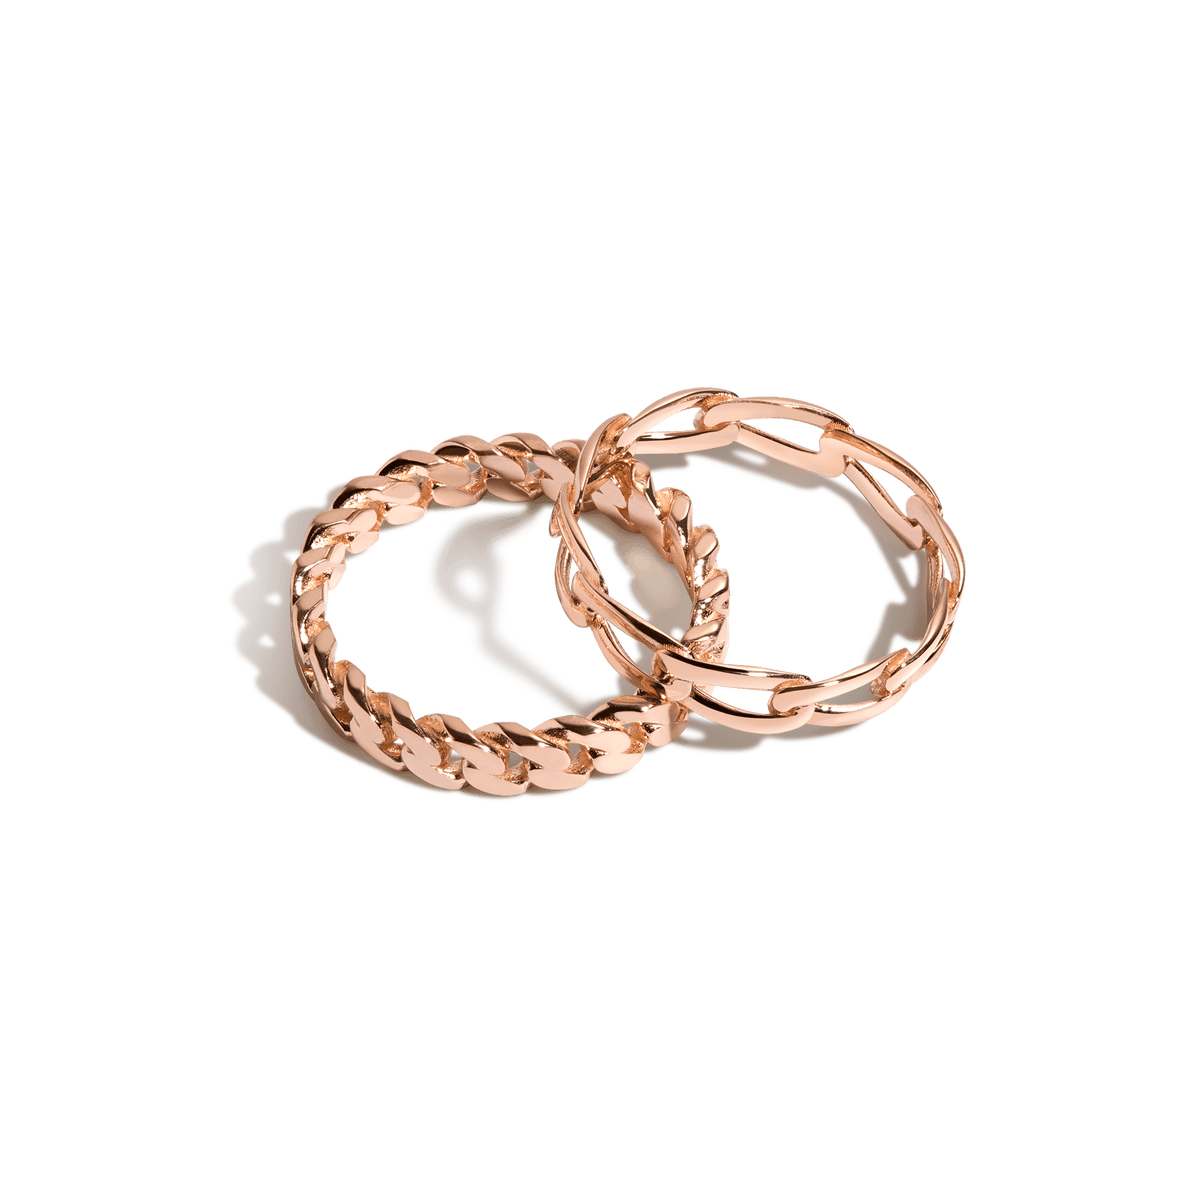 The Statement Chain Ring Set Vermeil Rose Gold First